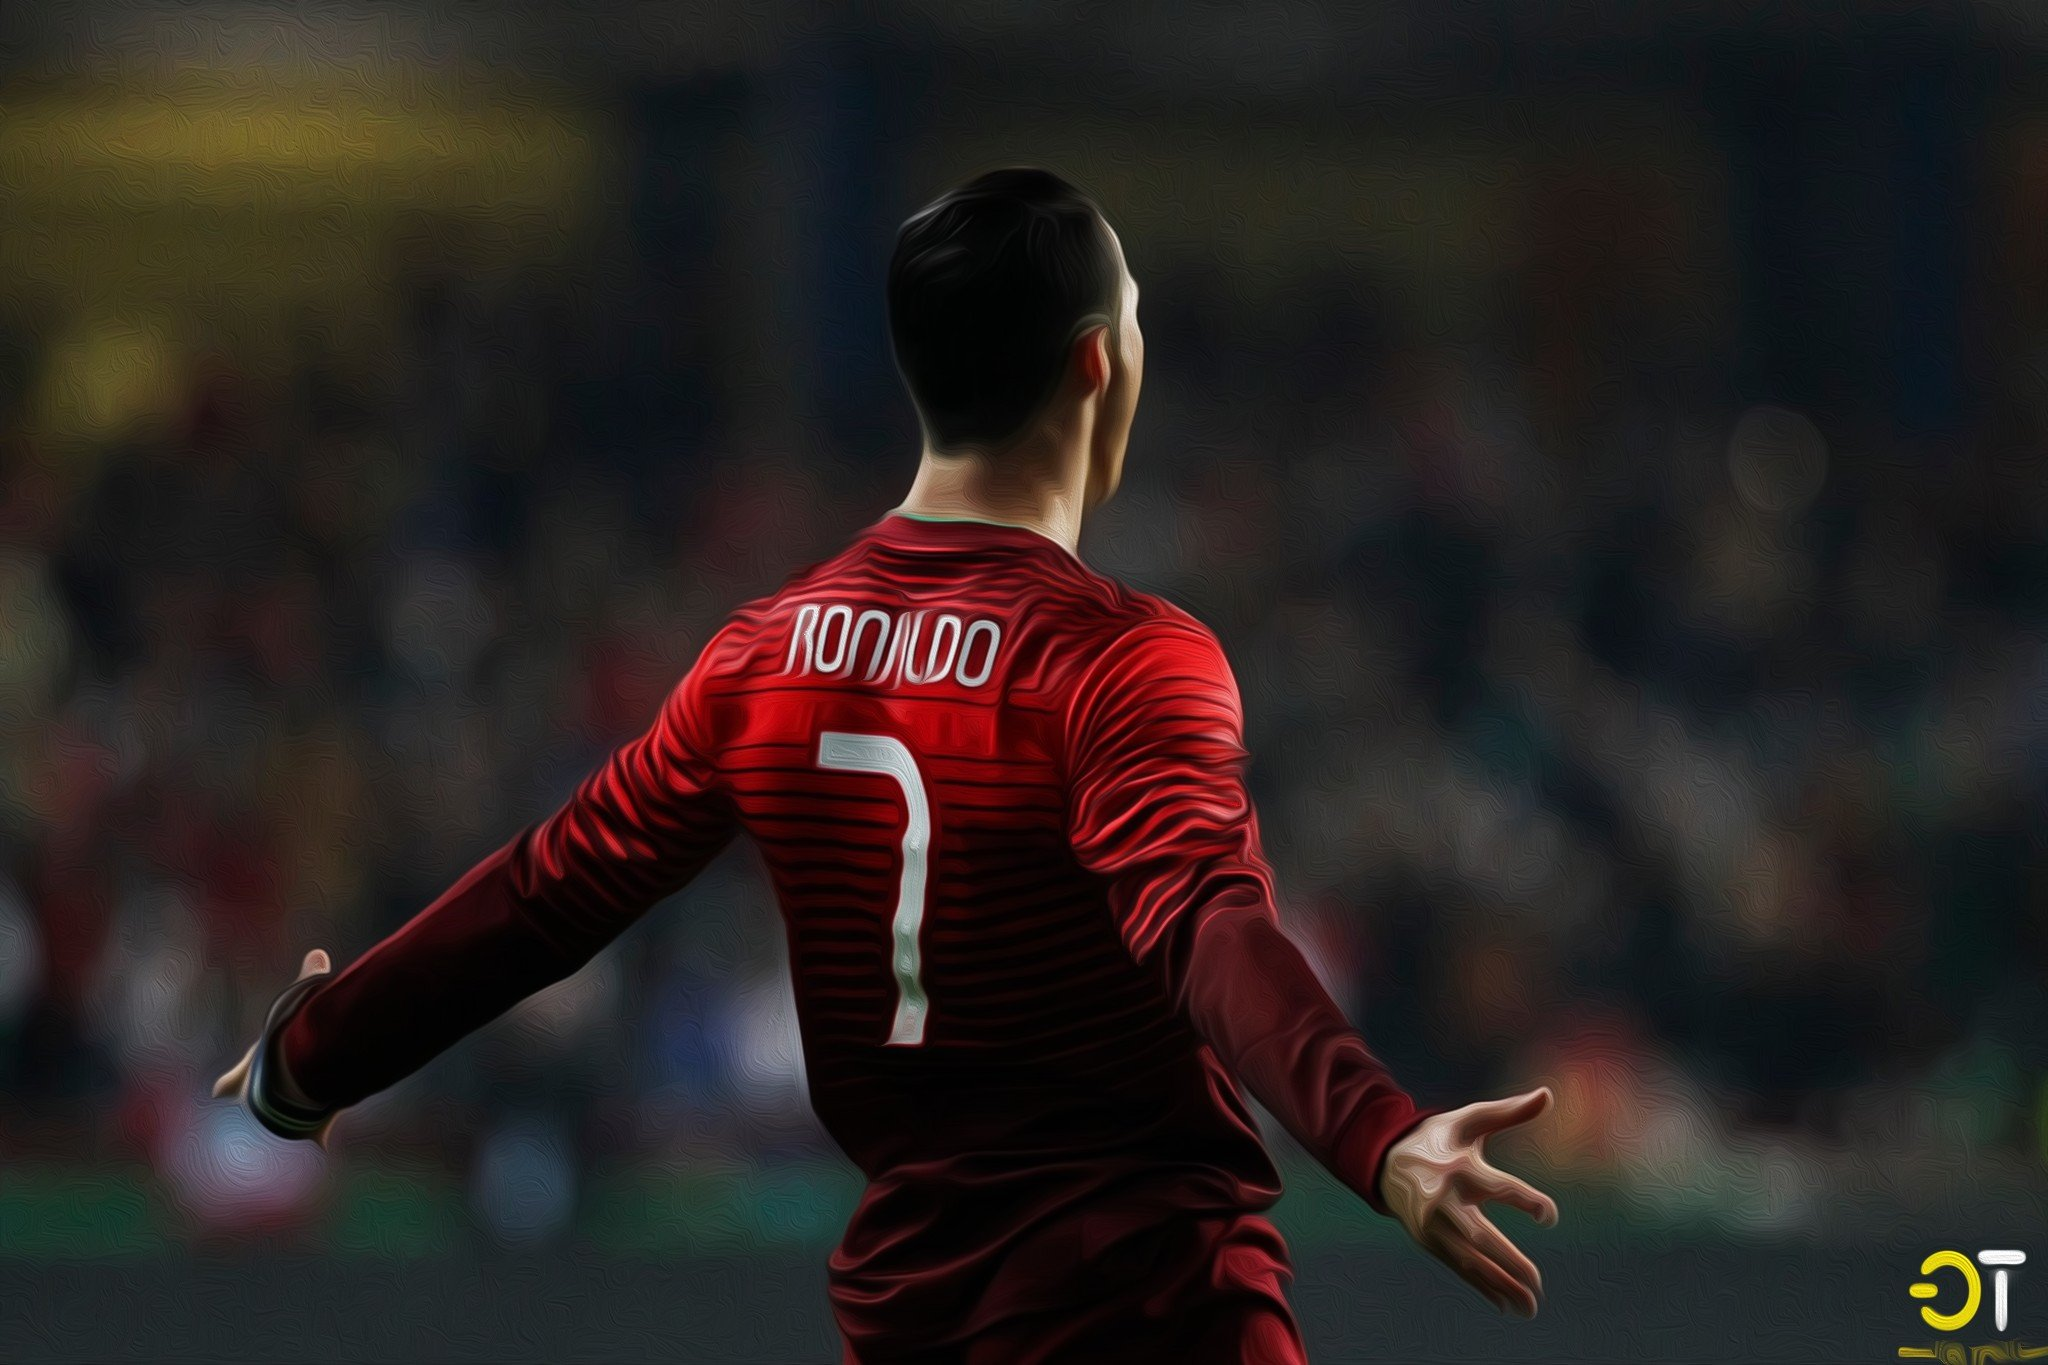 Cristiano ronaldo portugal hd wallpapers desktop and - C ronaldo wallpaper portugal ...